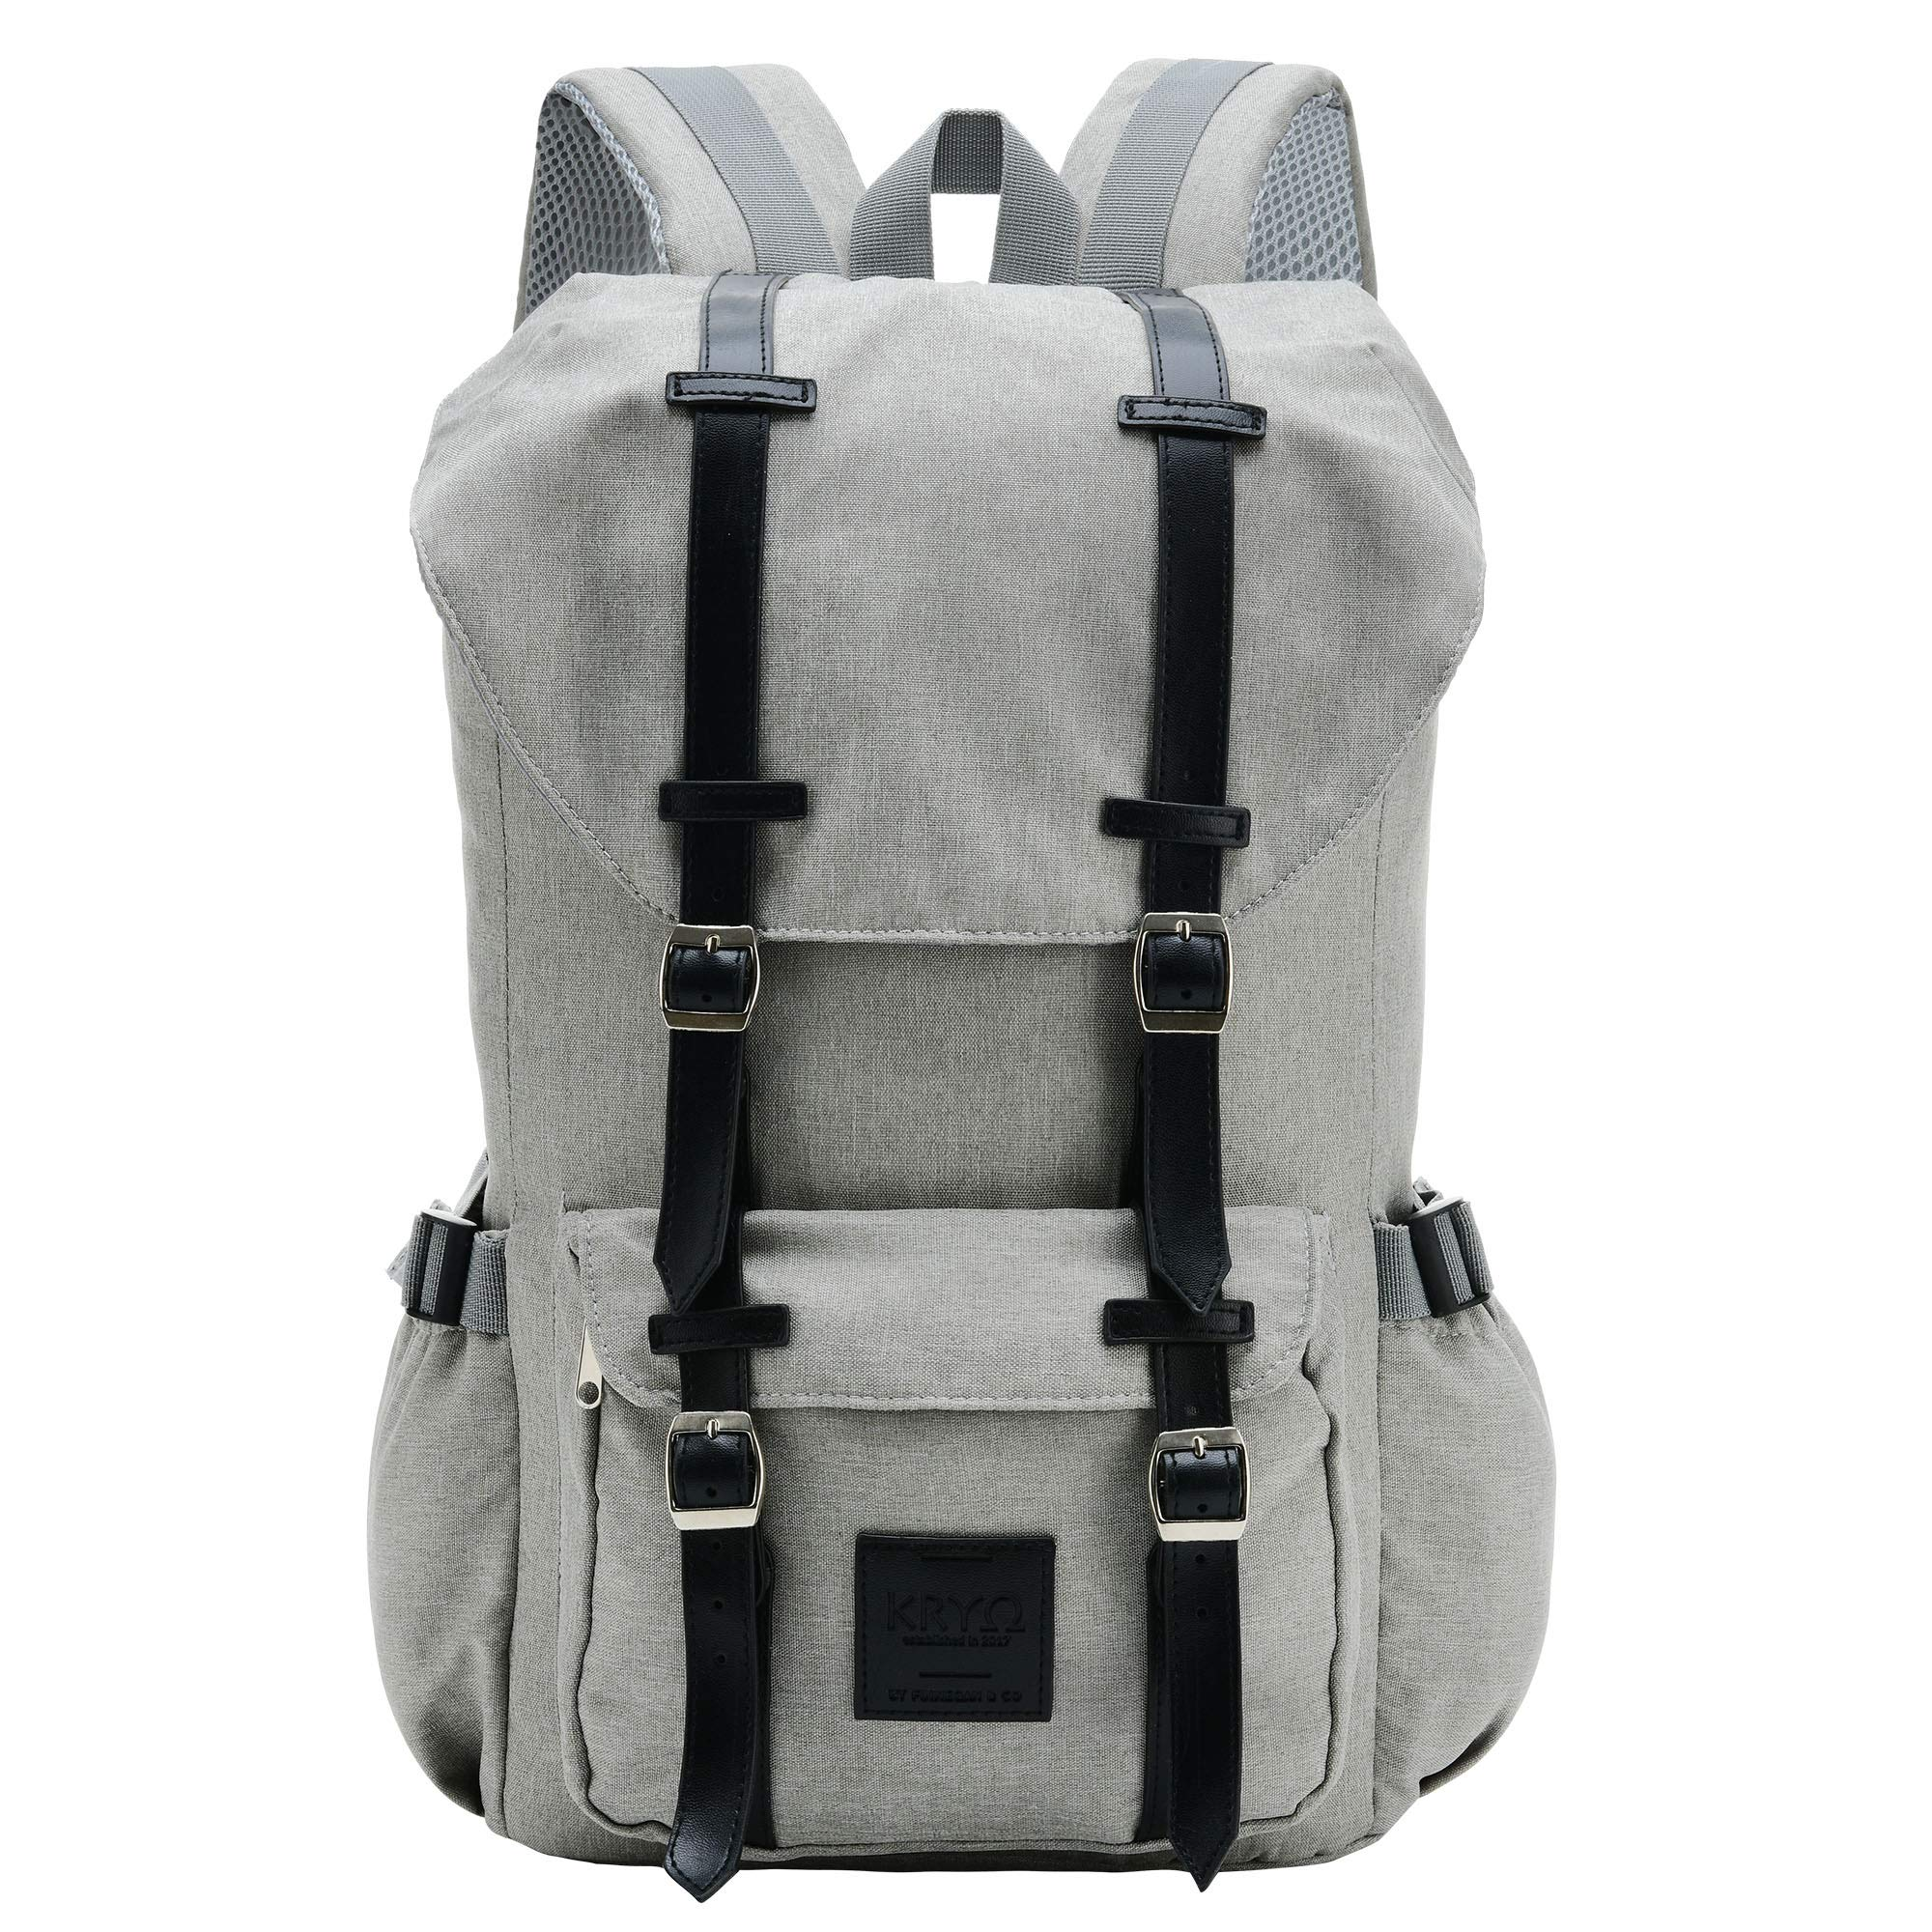 Insulated Backpack by KRYO - Leak Proof Cooler - Lunch, Travel, and Hiking Bag